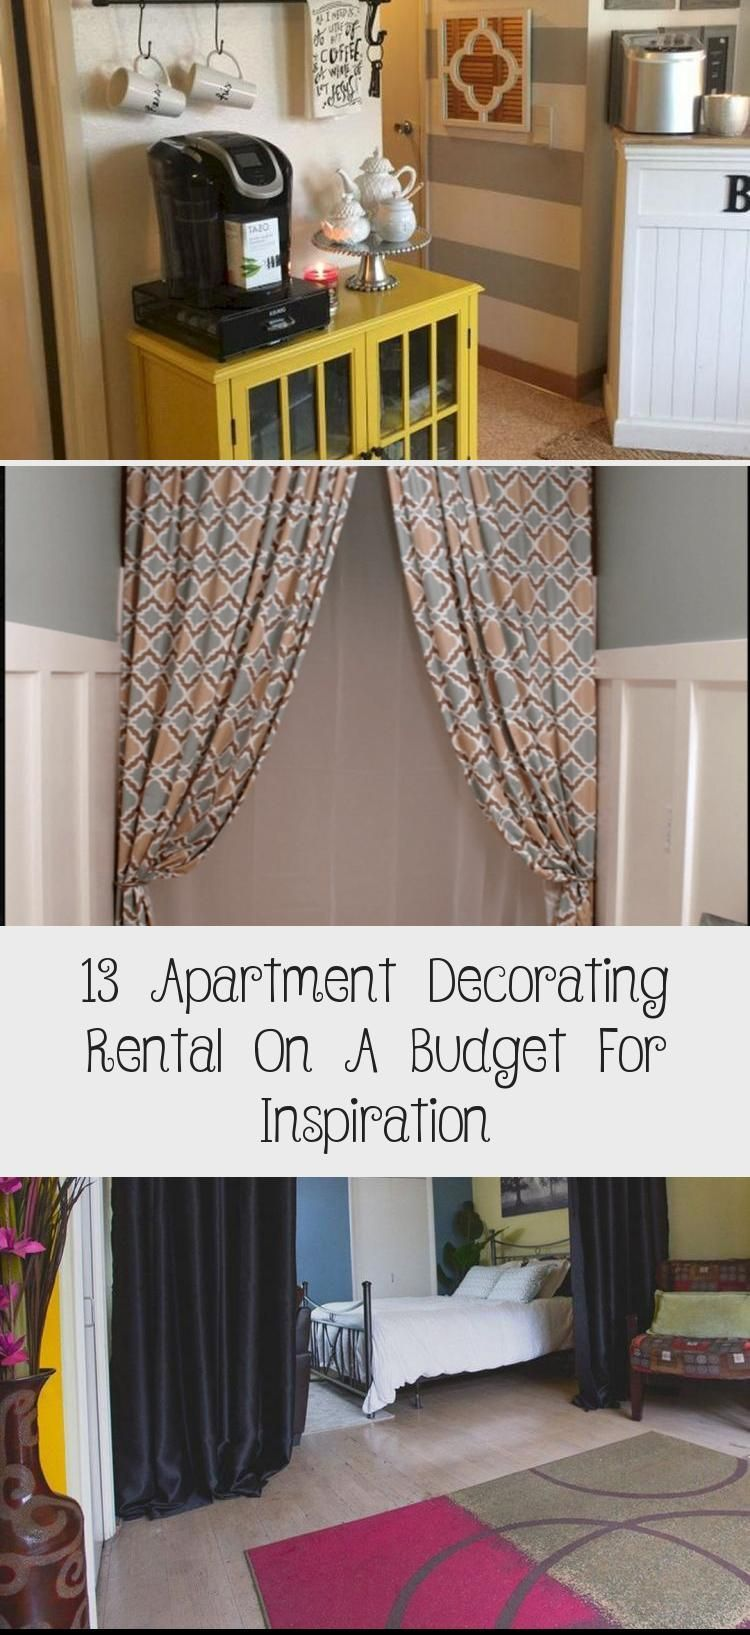 13 Apartment Decorating Rental On A Budget For Inspiration  İnformation Decorapartment